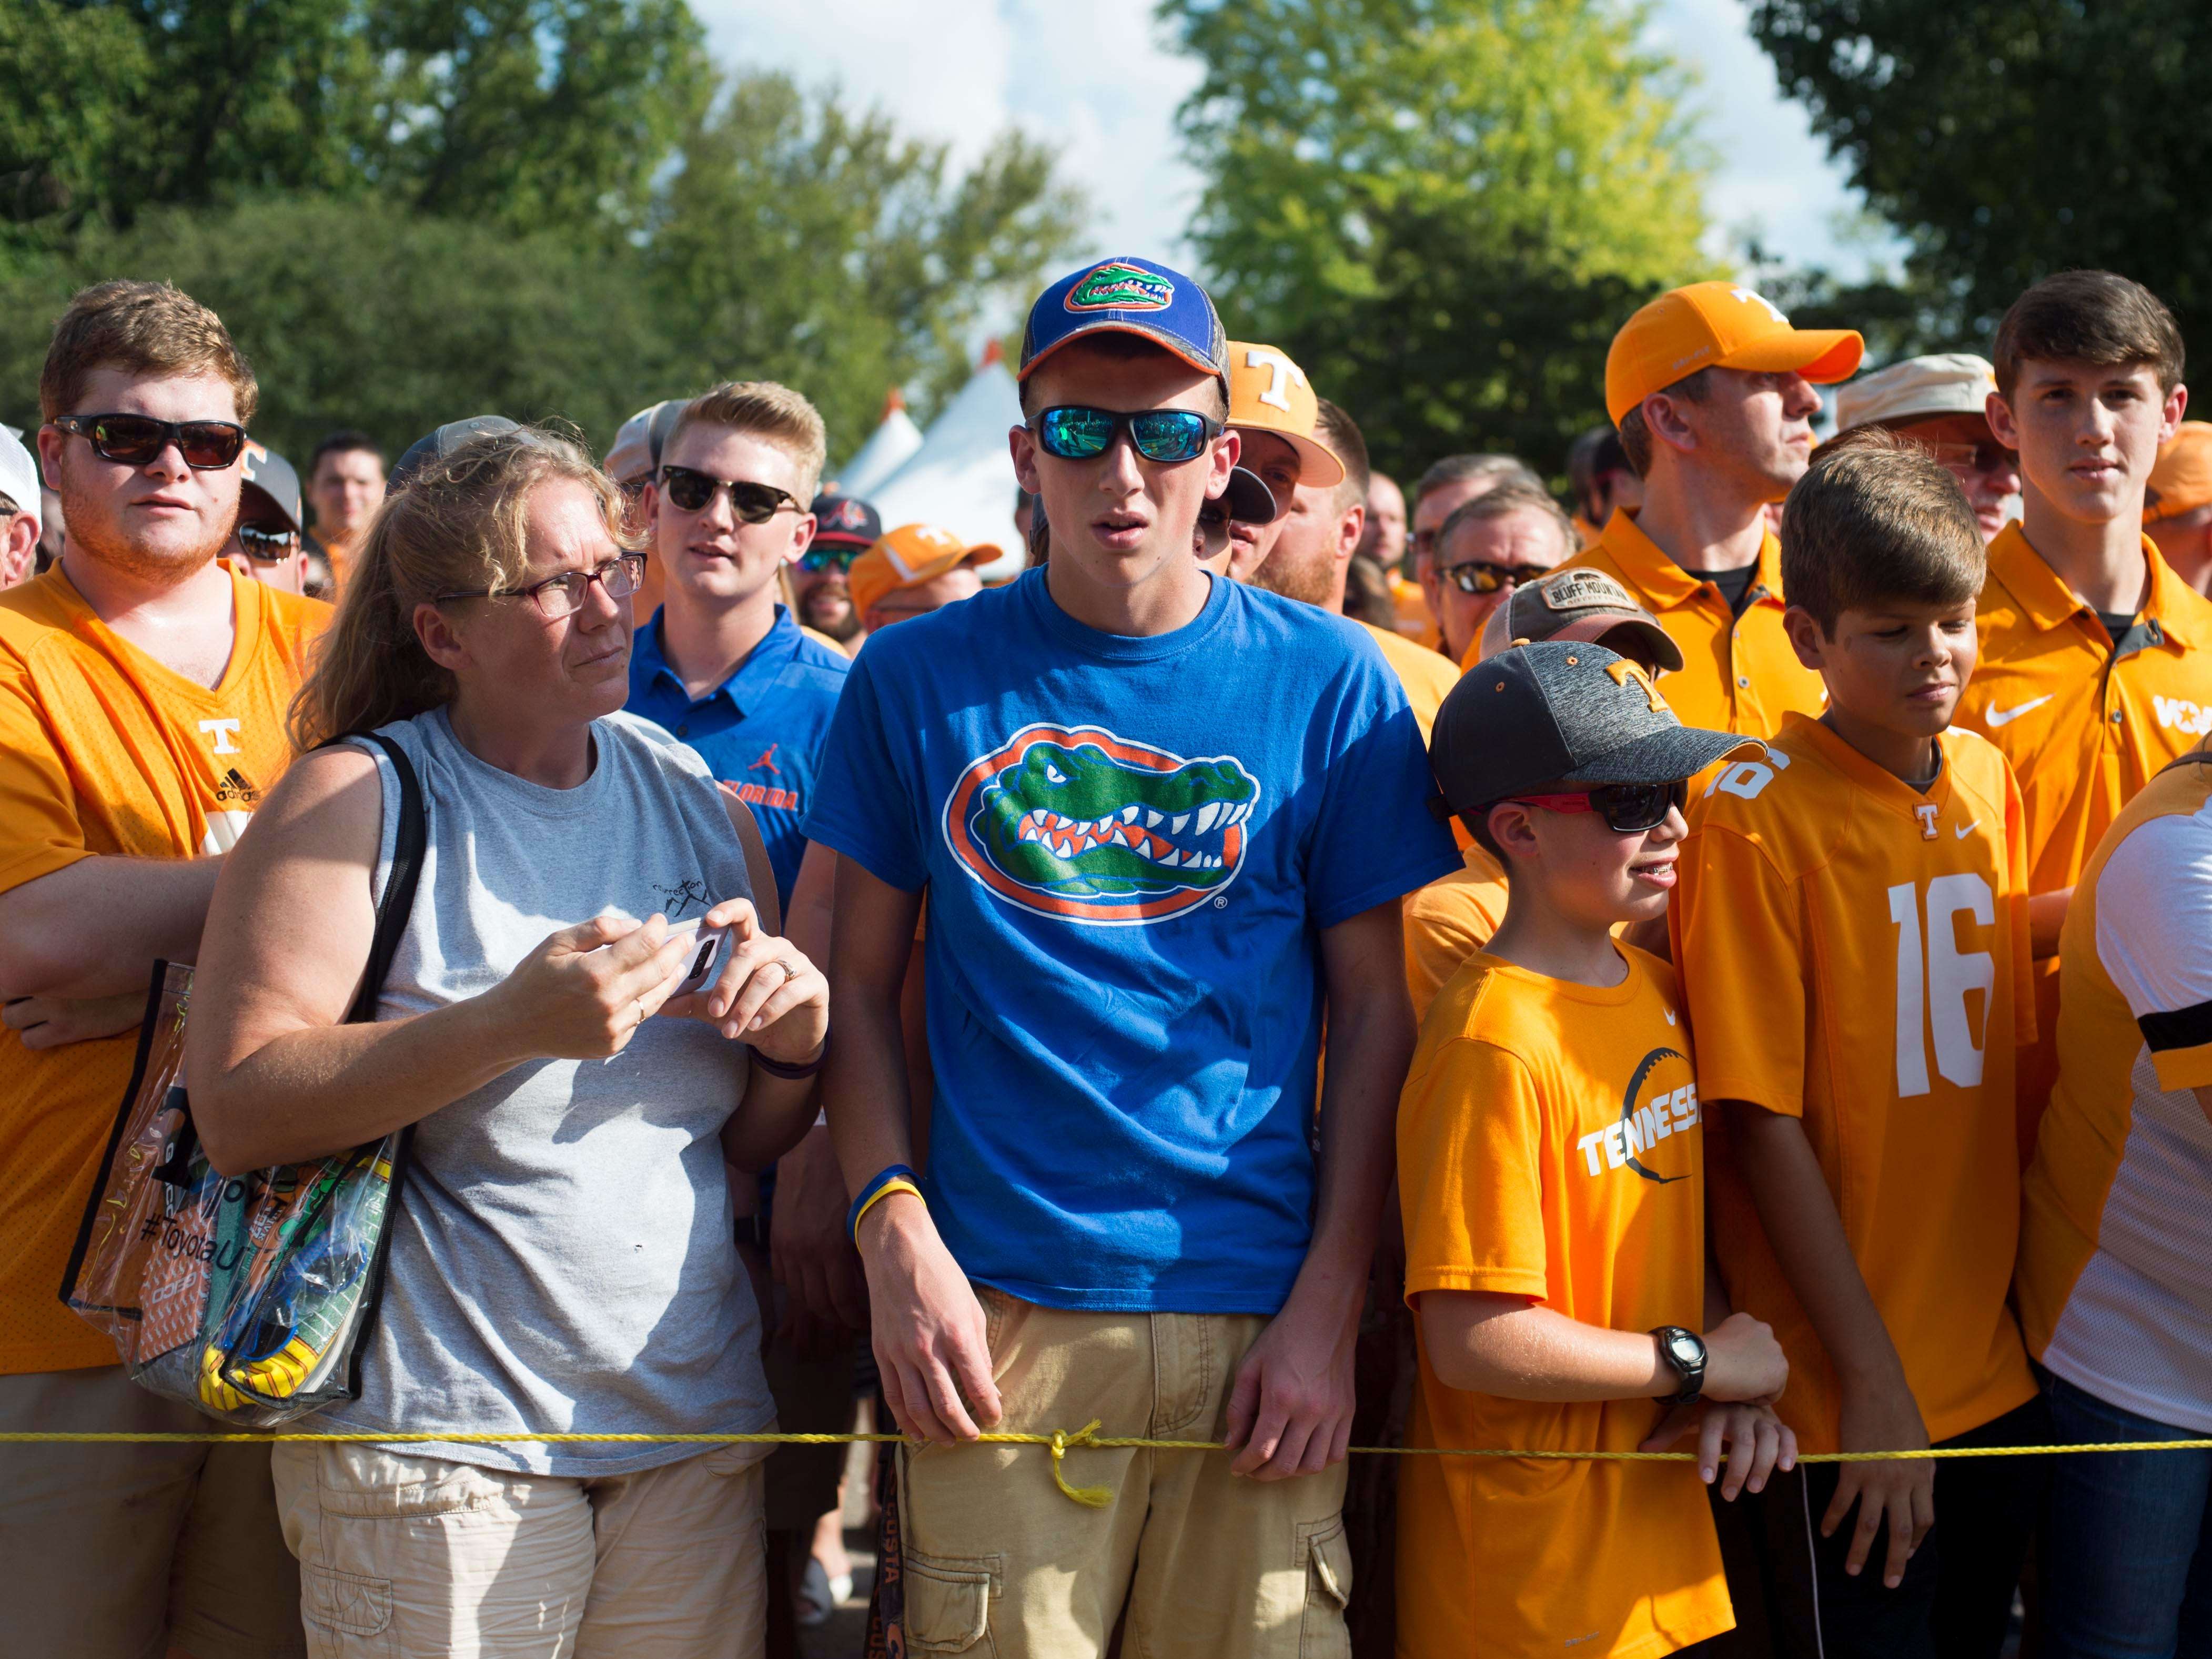 A Florida fan among Tennessee fans at the Vol Walk on Saturday, September 22, 2018.